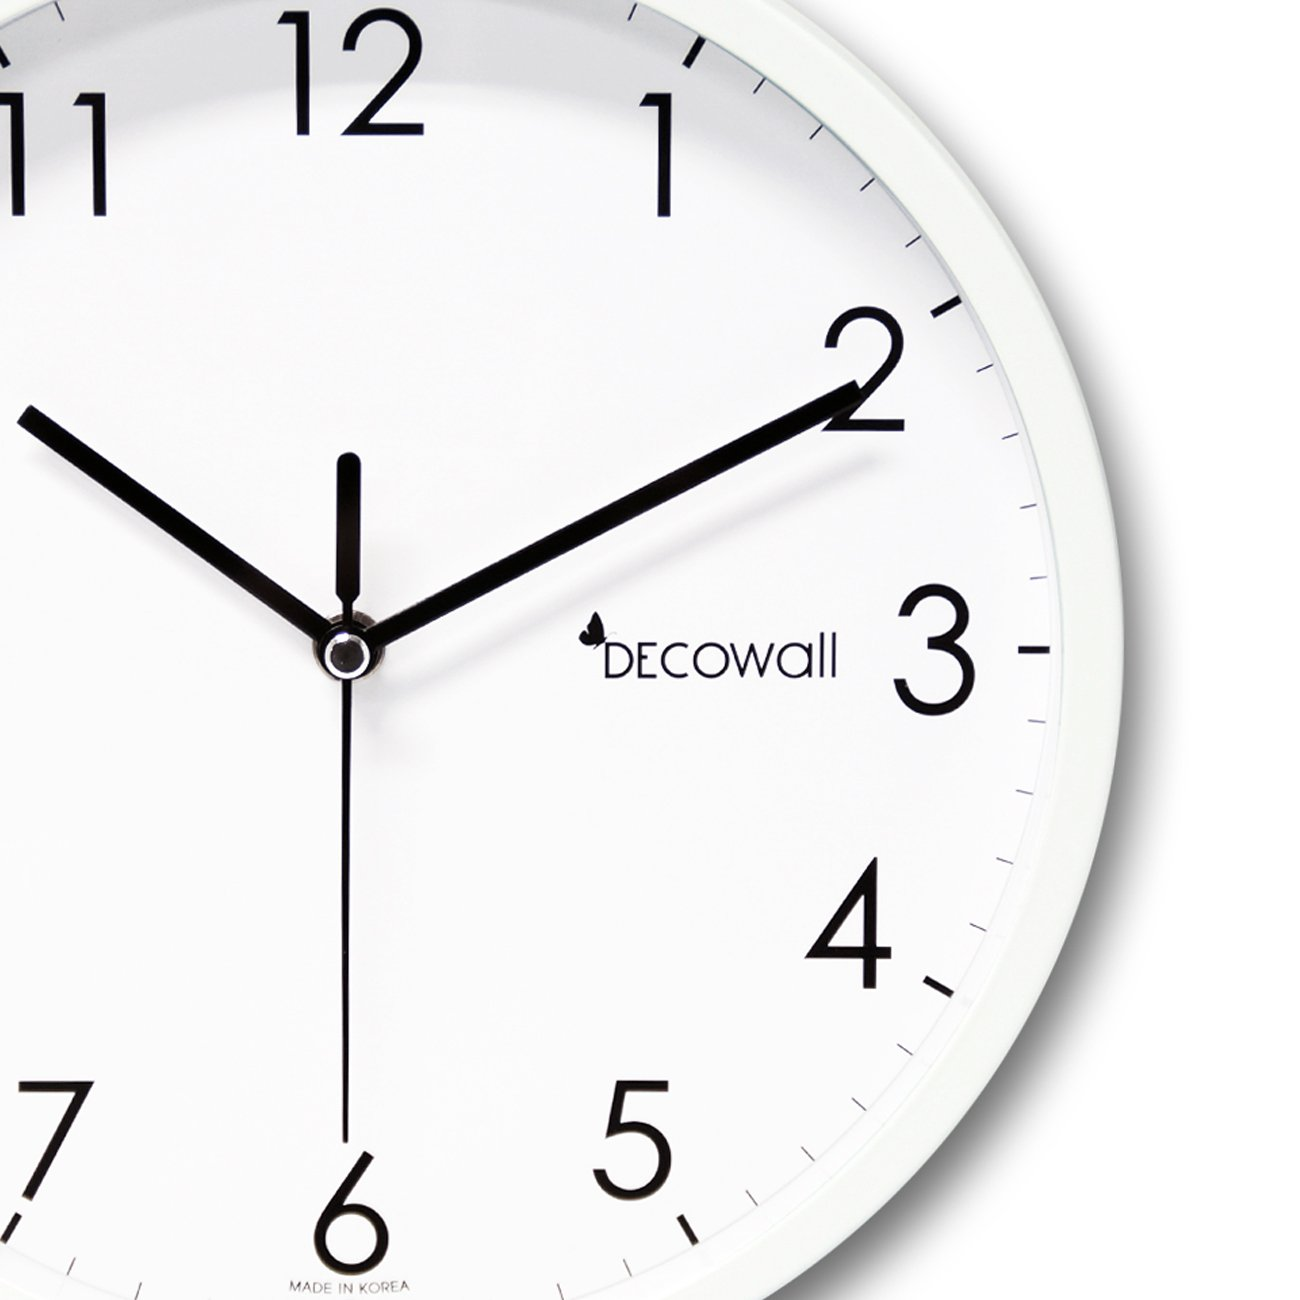 Decowall DSH-MSBW250 9.8 Non-ticking Silent Modern Metal Wall Clock DIY for Living Room Bedrooms Office Kitchens 25cm, White